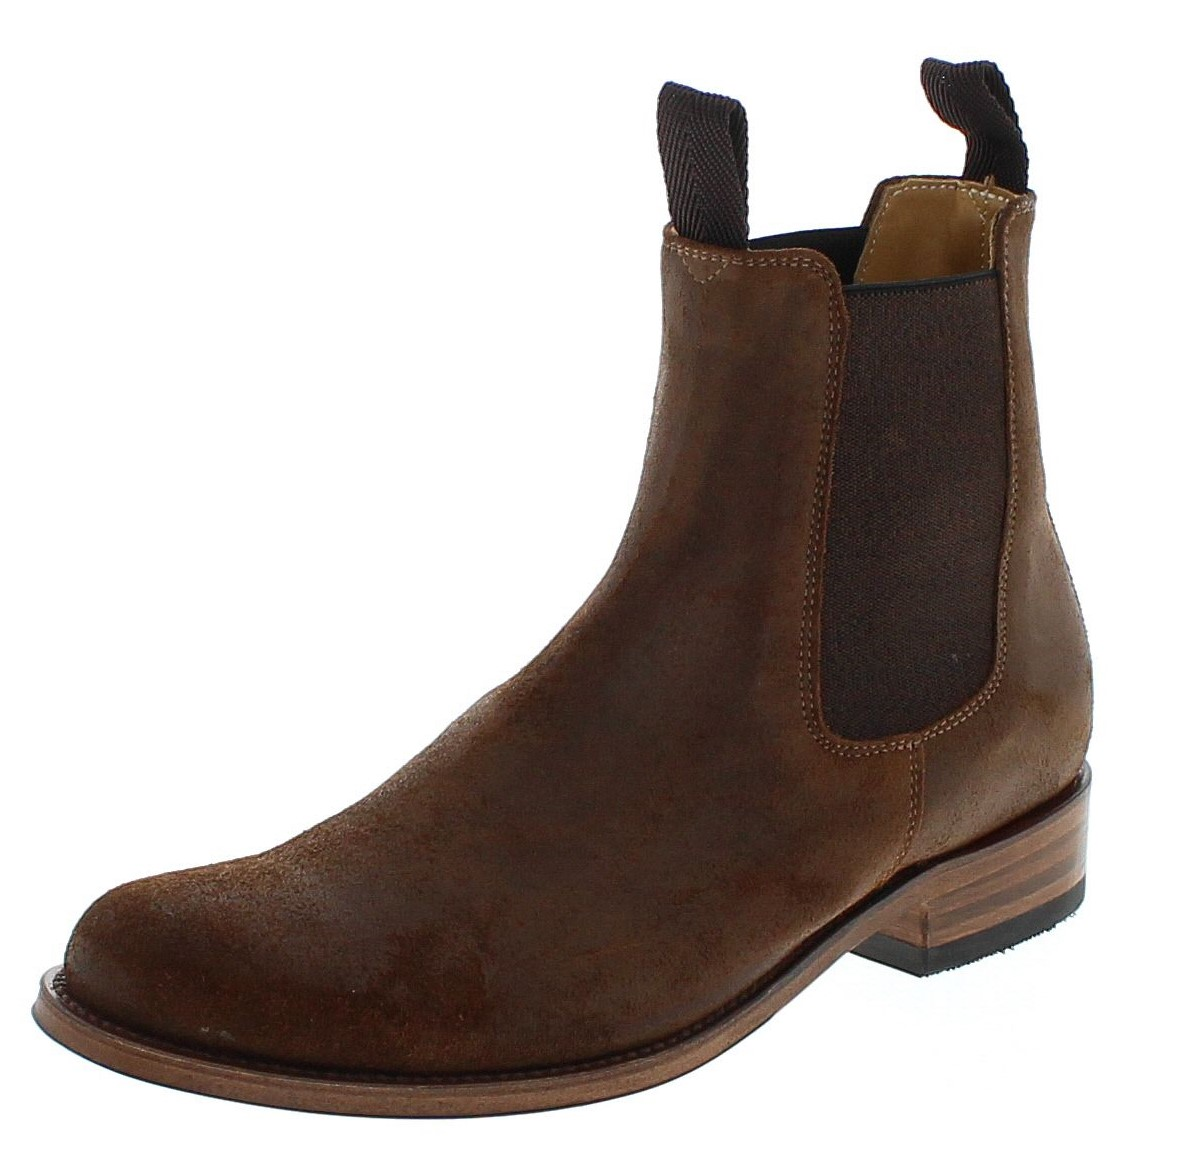 Sendra Boots 5595 Rovere Fashion ankle boot - brown